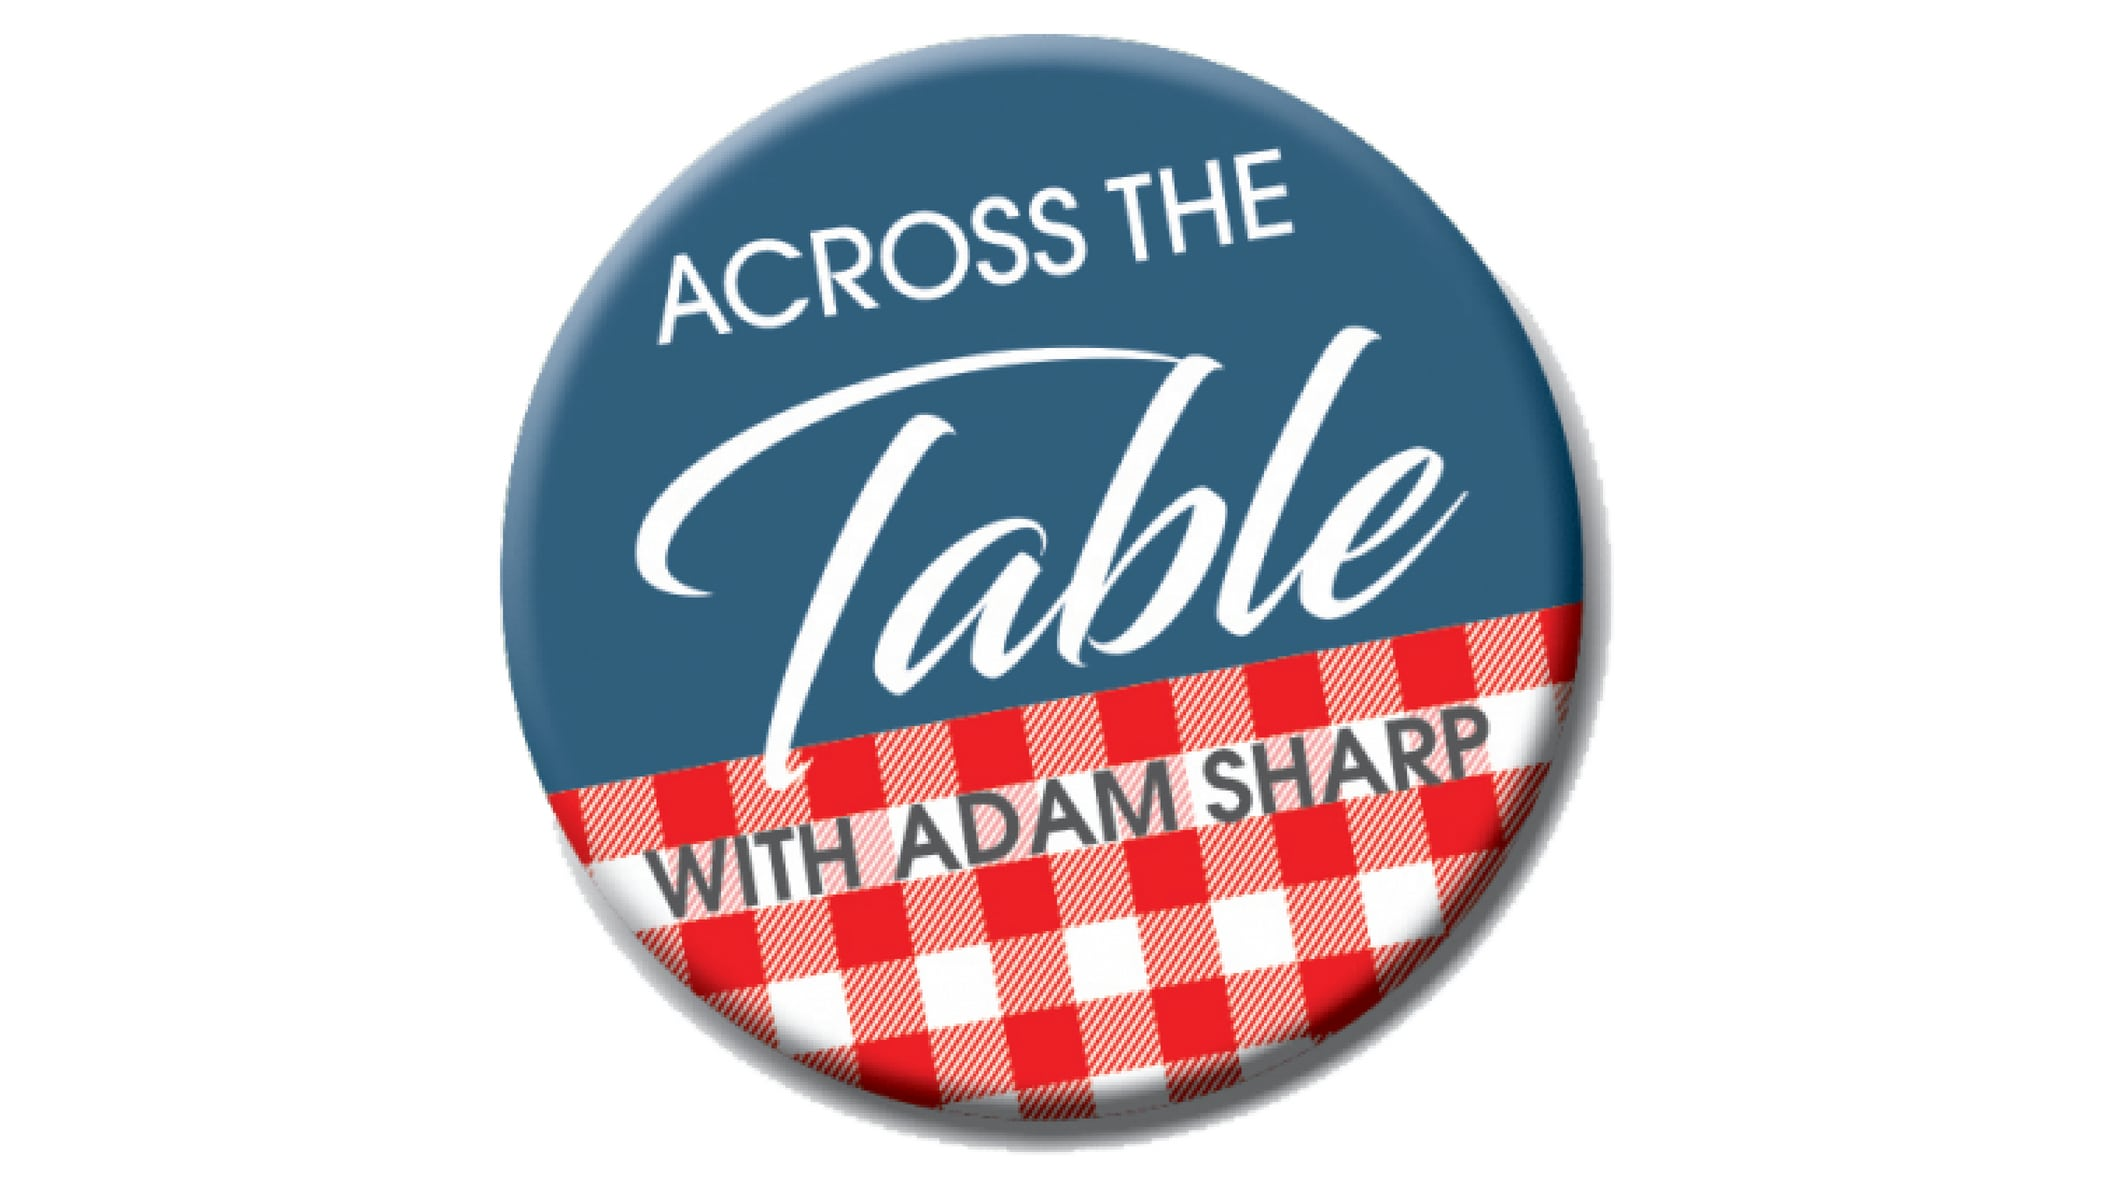 across-the-table